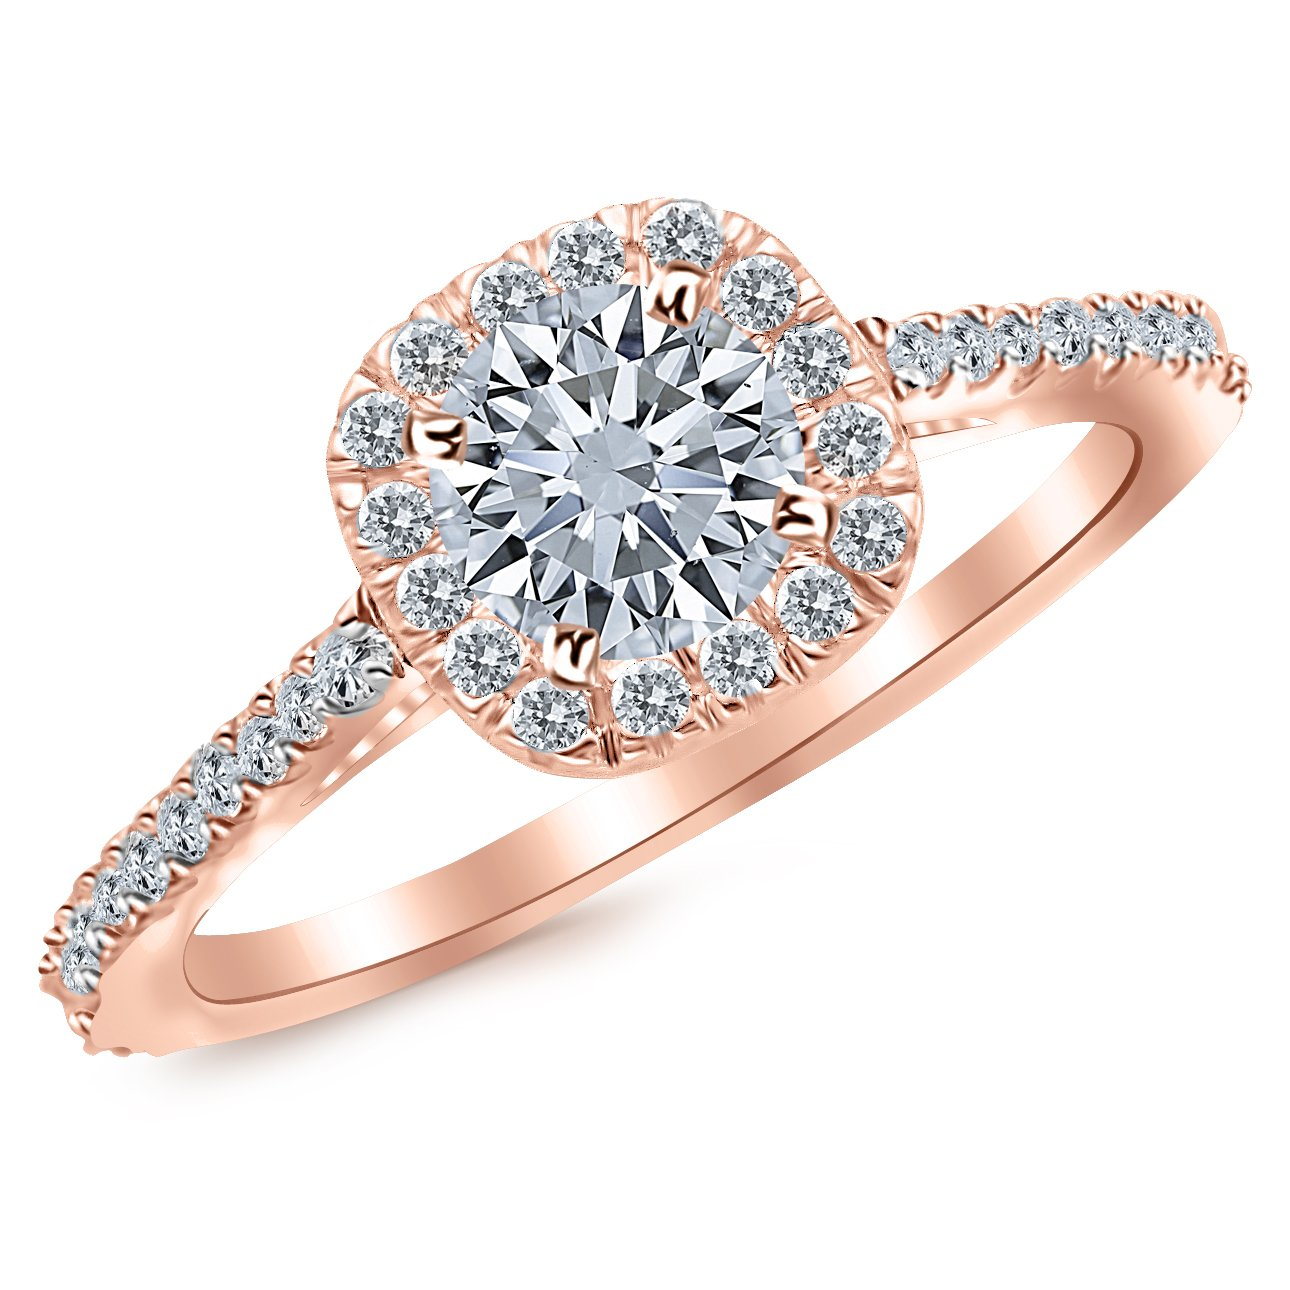 1.01 Carat Gorgeous Classic Cushion Halo Style Diamond Engagement Ring 14K Rose Gold with a 0.63 Carat H-I I2 Round Brilliant Cut/Shape Center